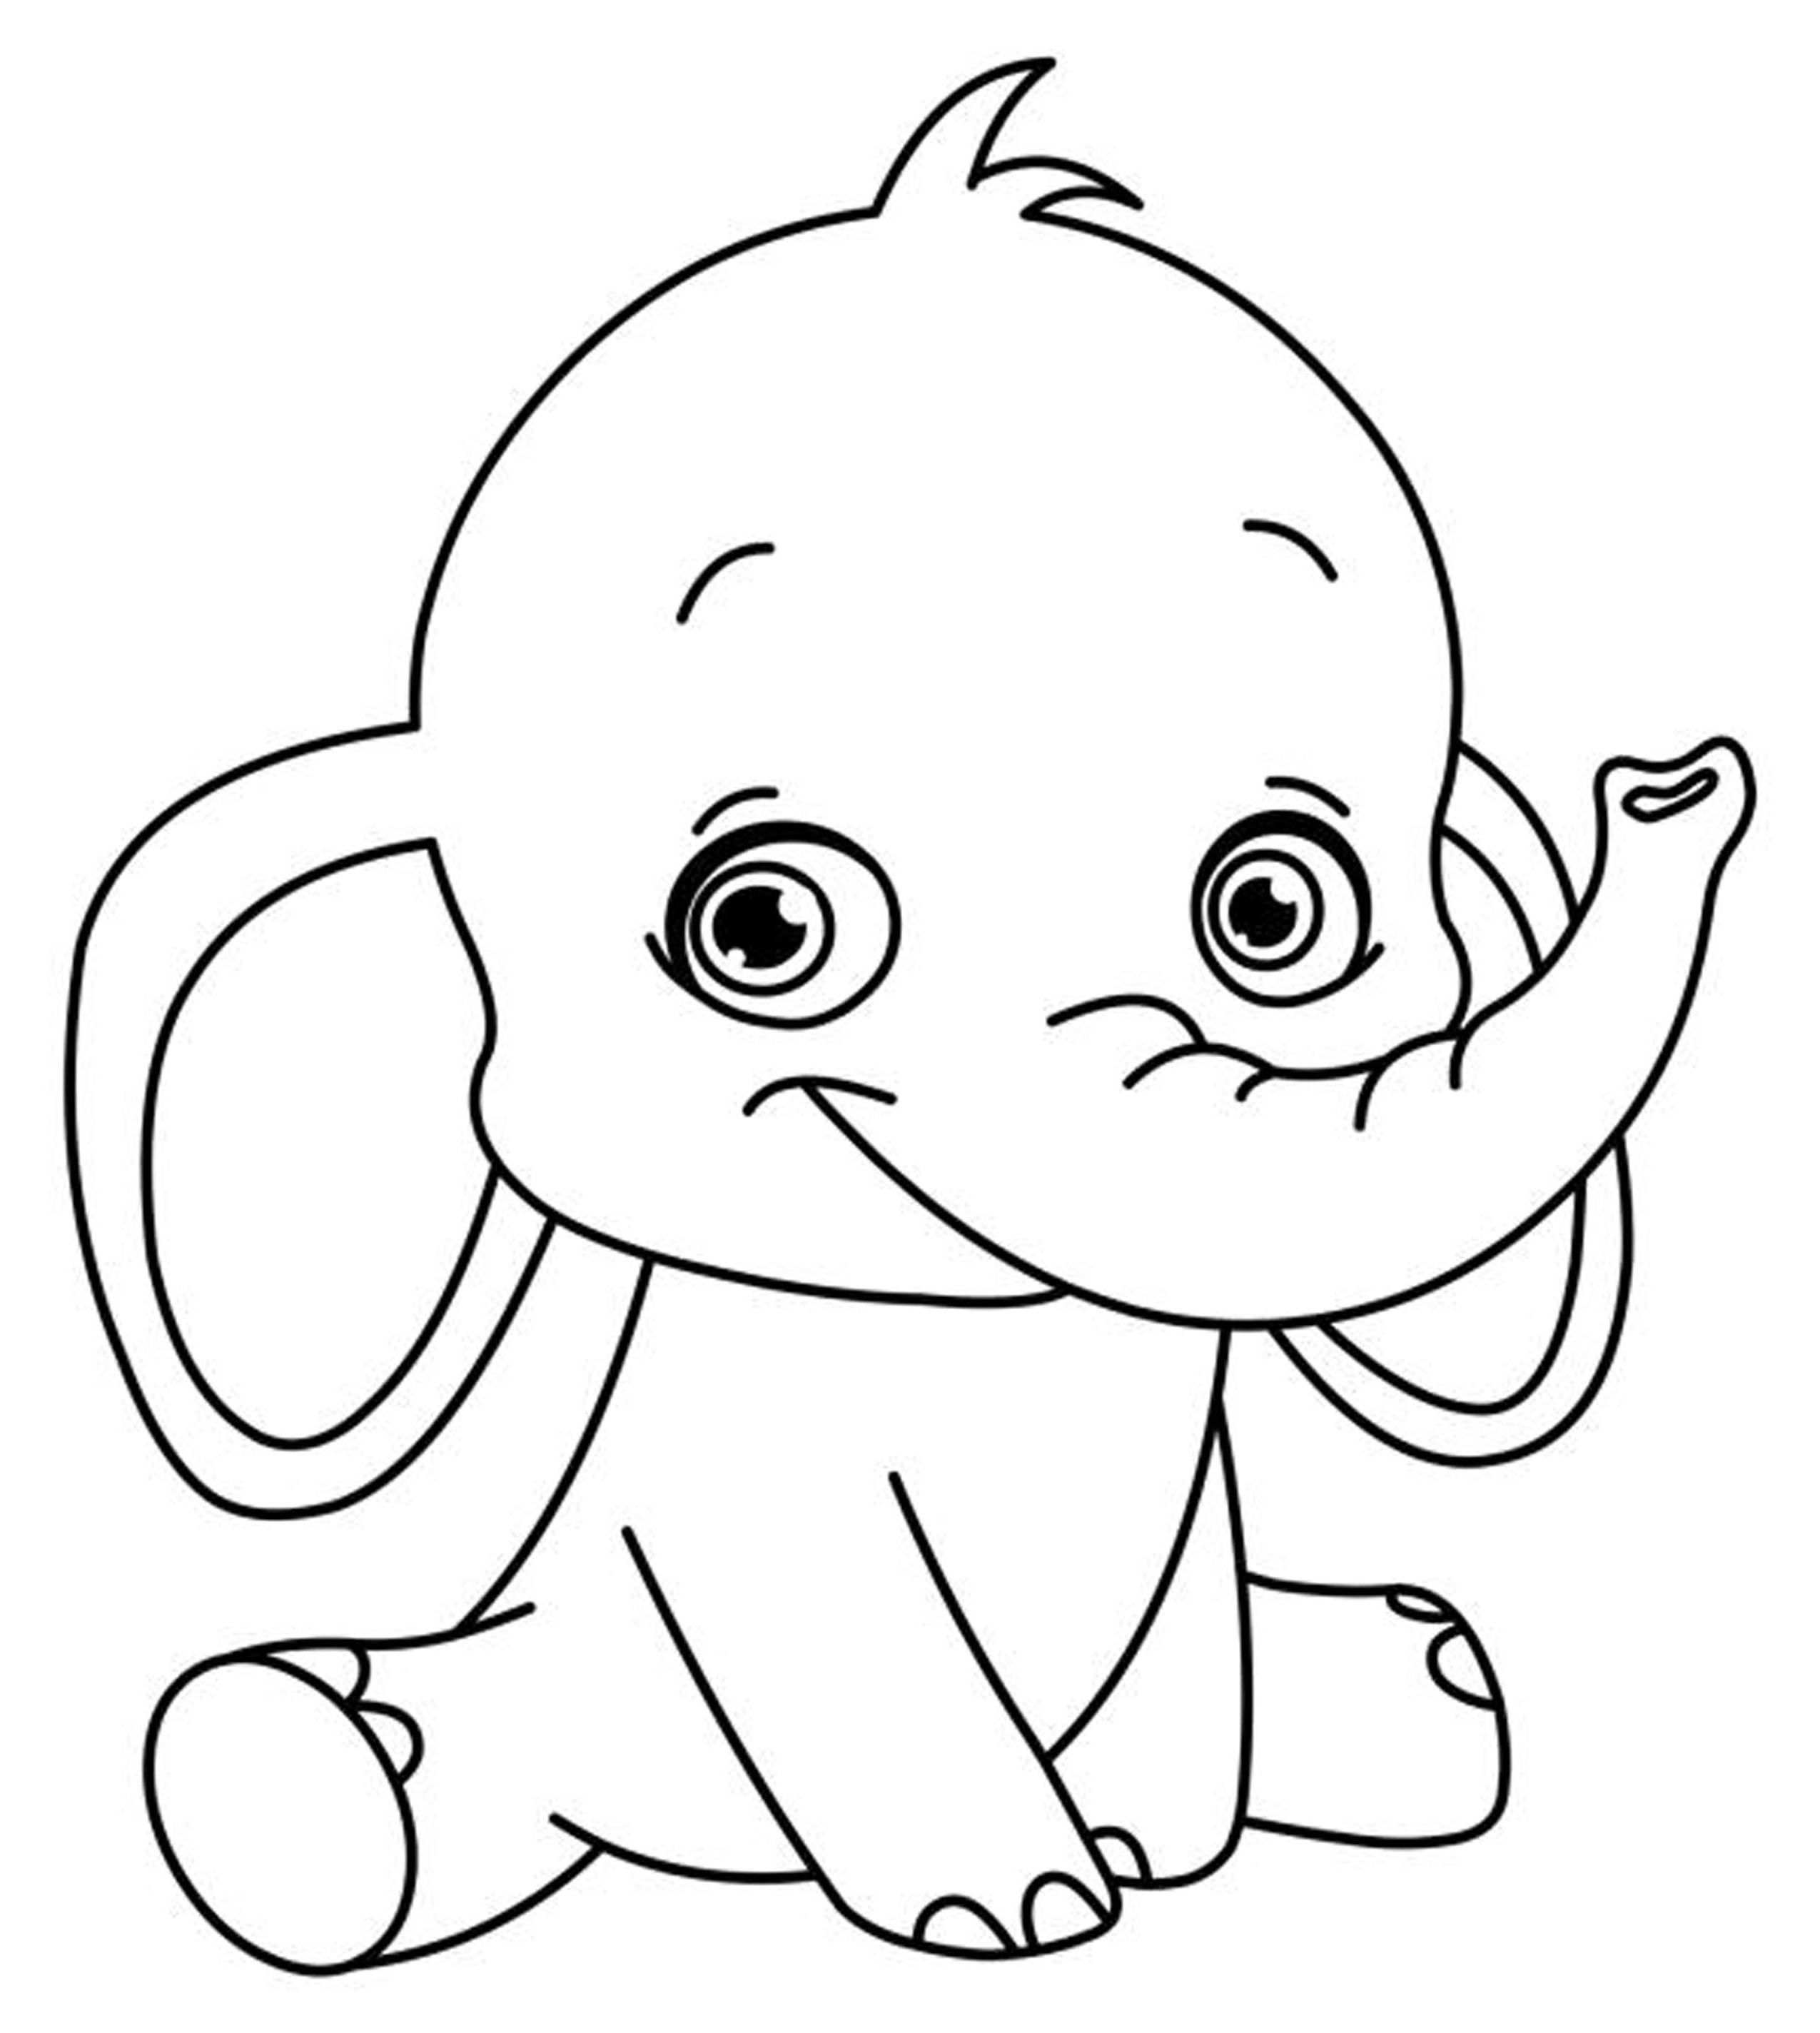 Easy Coloring Pages Printable Coloring Home Easy Disney Coloring Pages